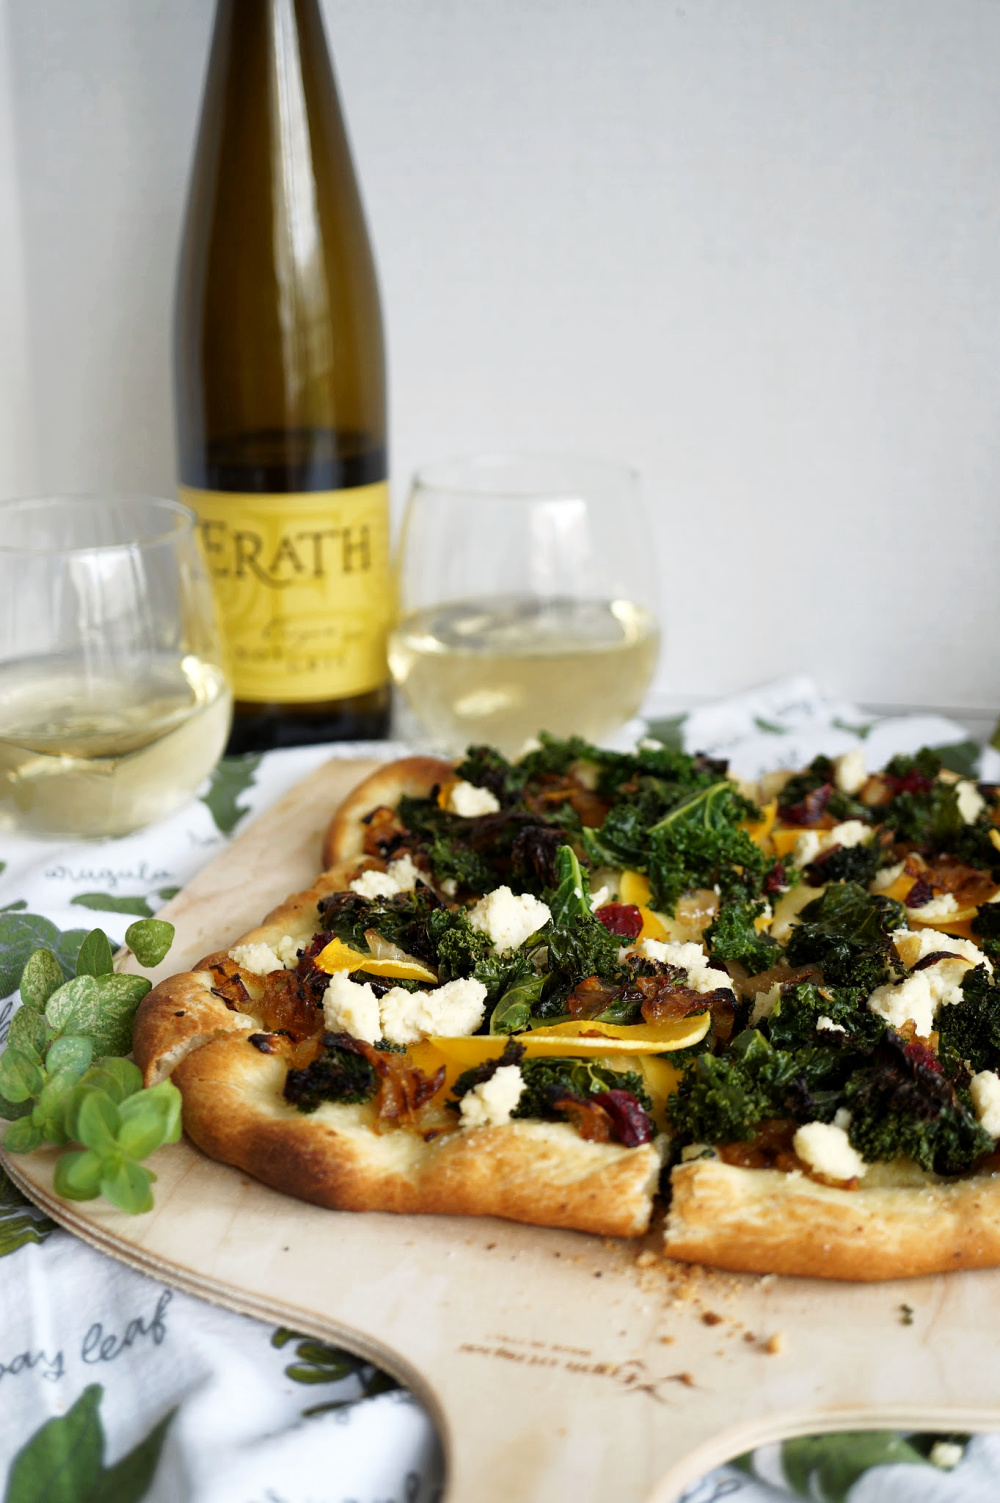 pizza with wine bottle in the background